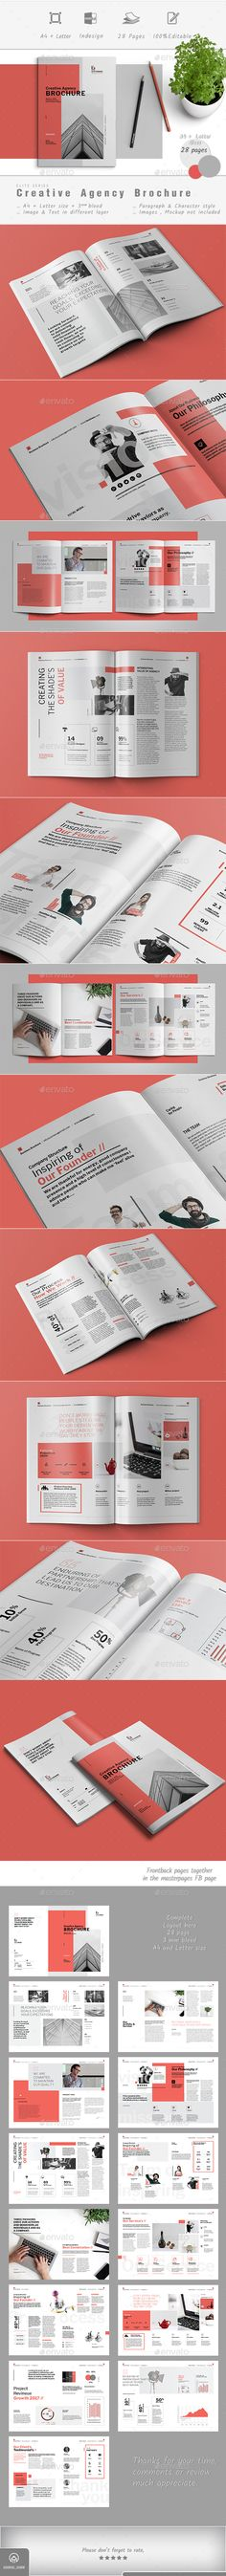 Corporate Brochure — InDesign INDD #annual report #company brochure • Download ➝ https://graphicriver.net/item/corporate-brochure/19049882?ref=pxcr